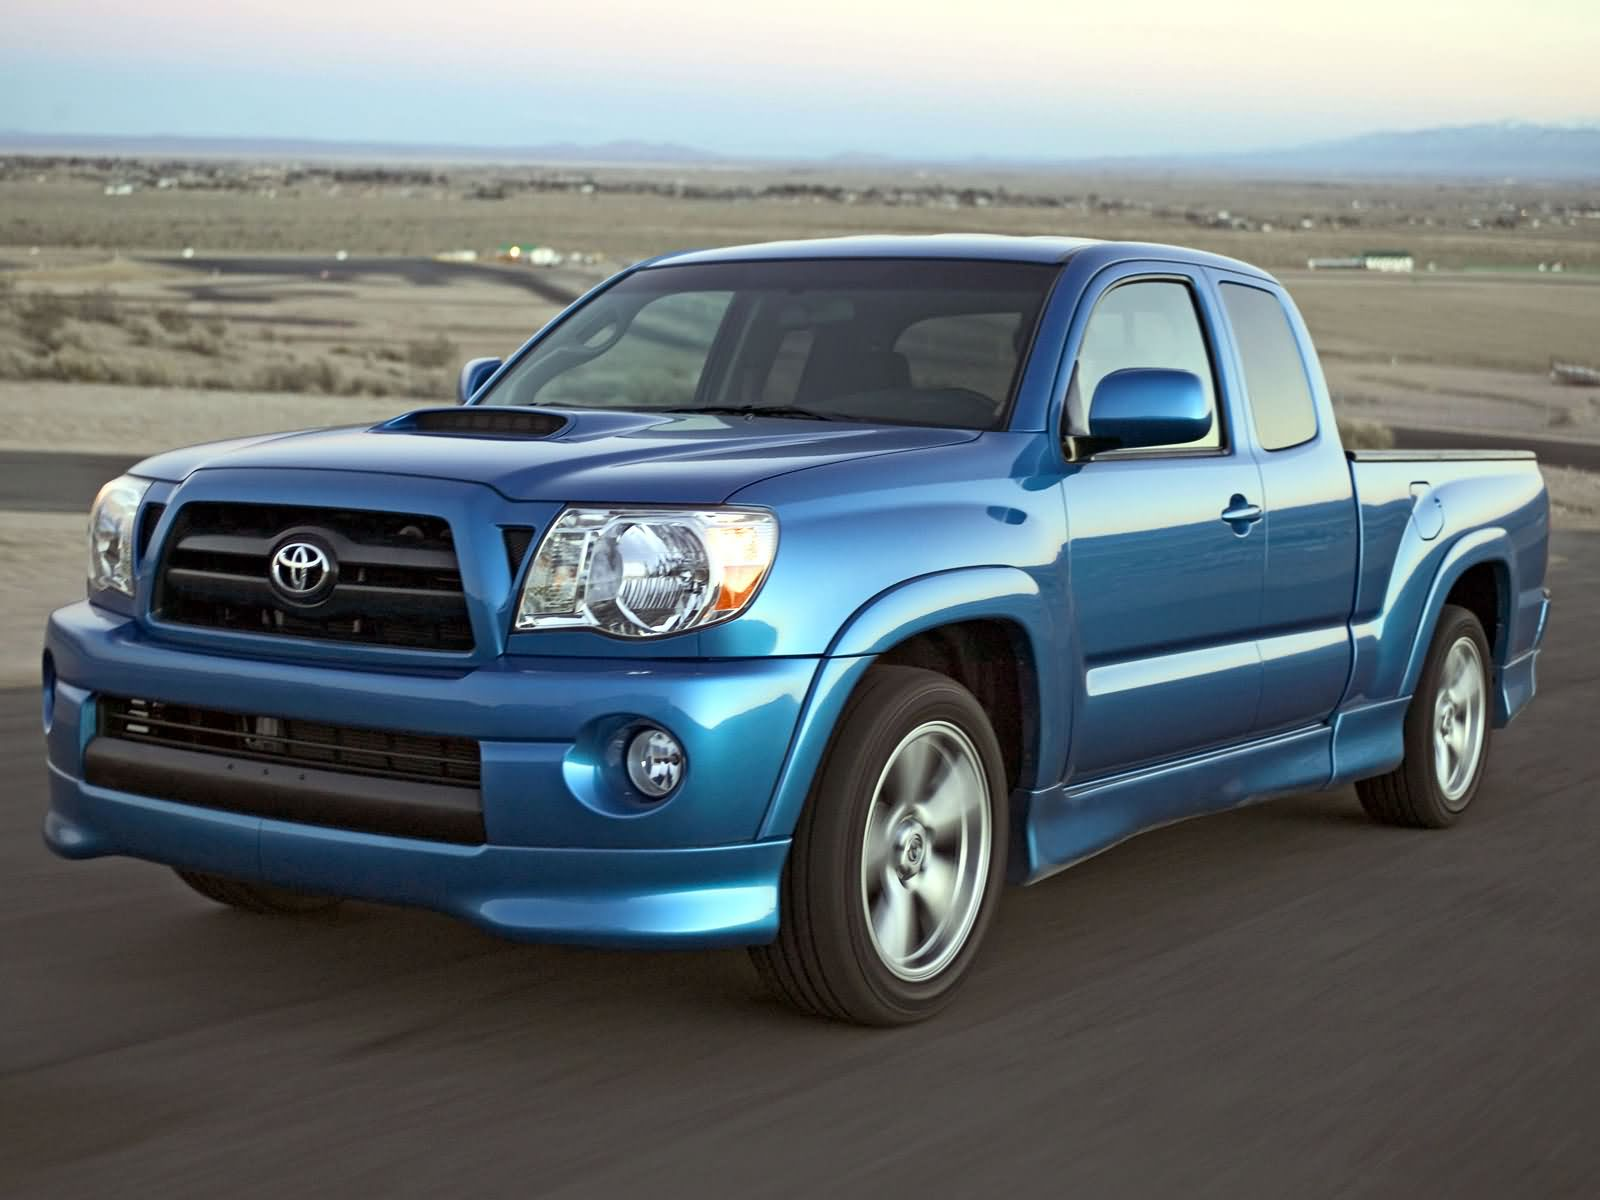 toyota tacoma x runner 2005 toyota tacoma x runner 2005. Black Bedroom Furniture Sets. Home Design Ideas